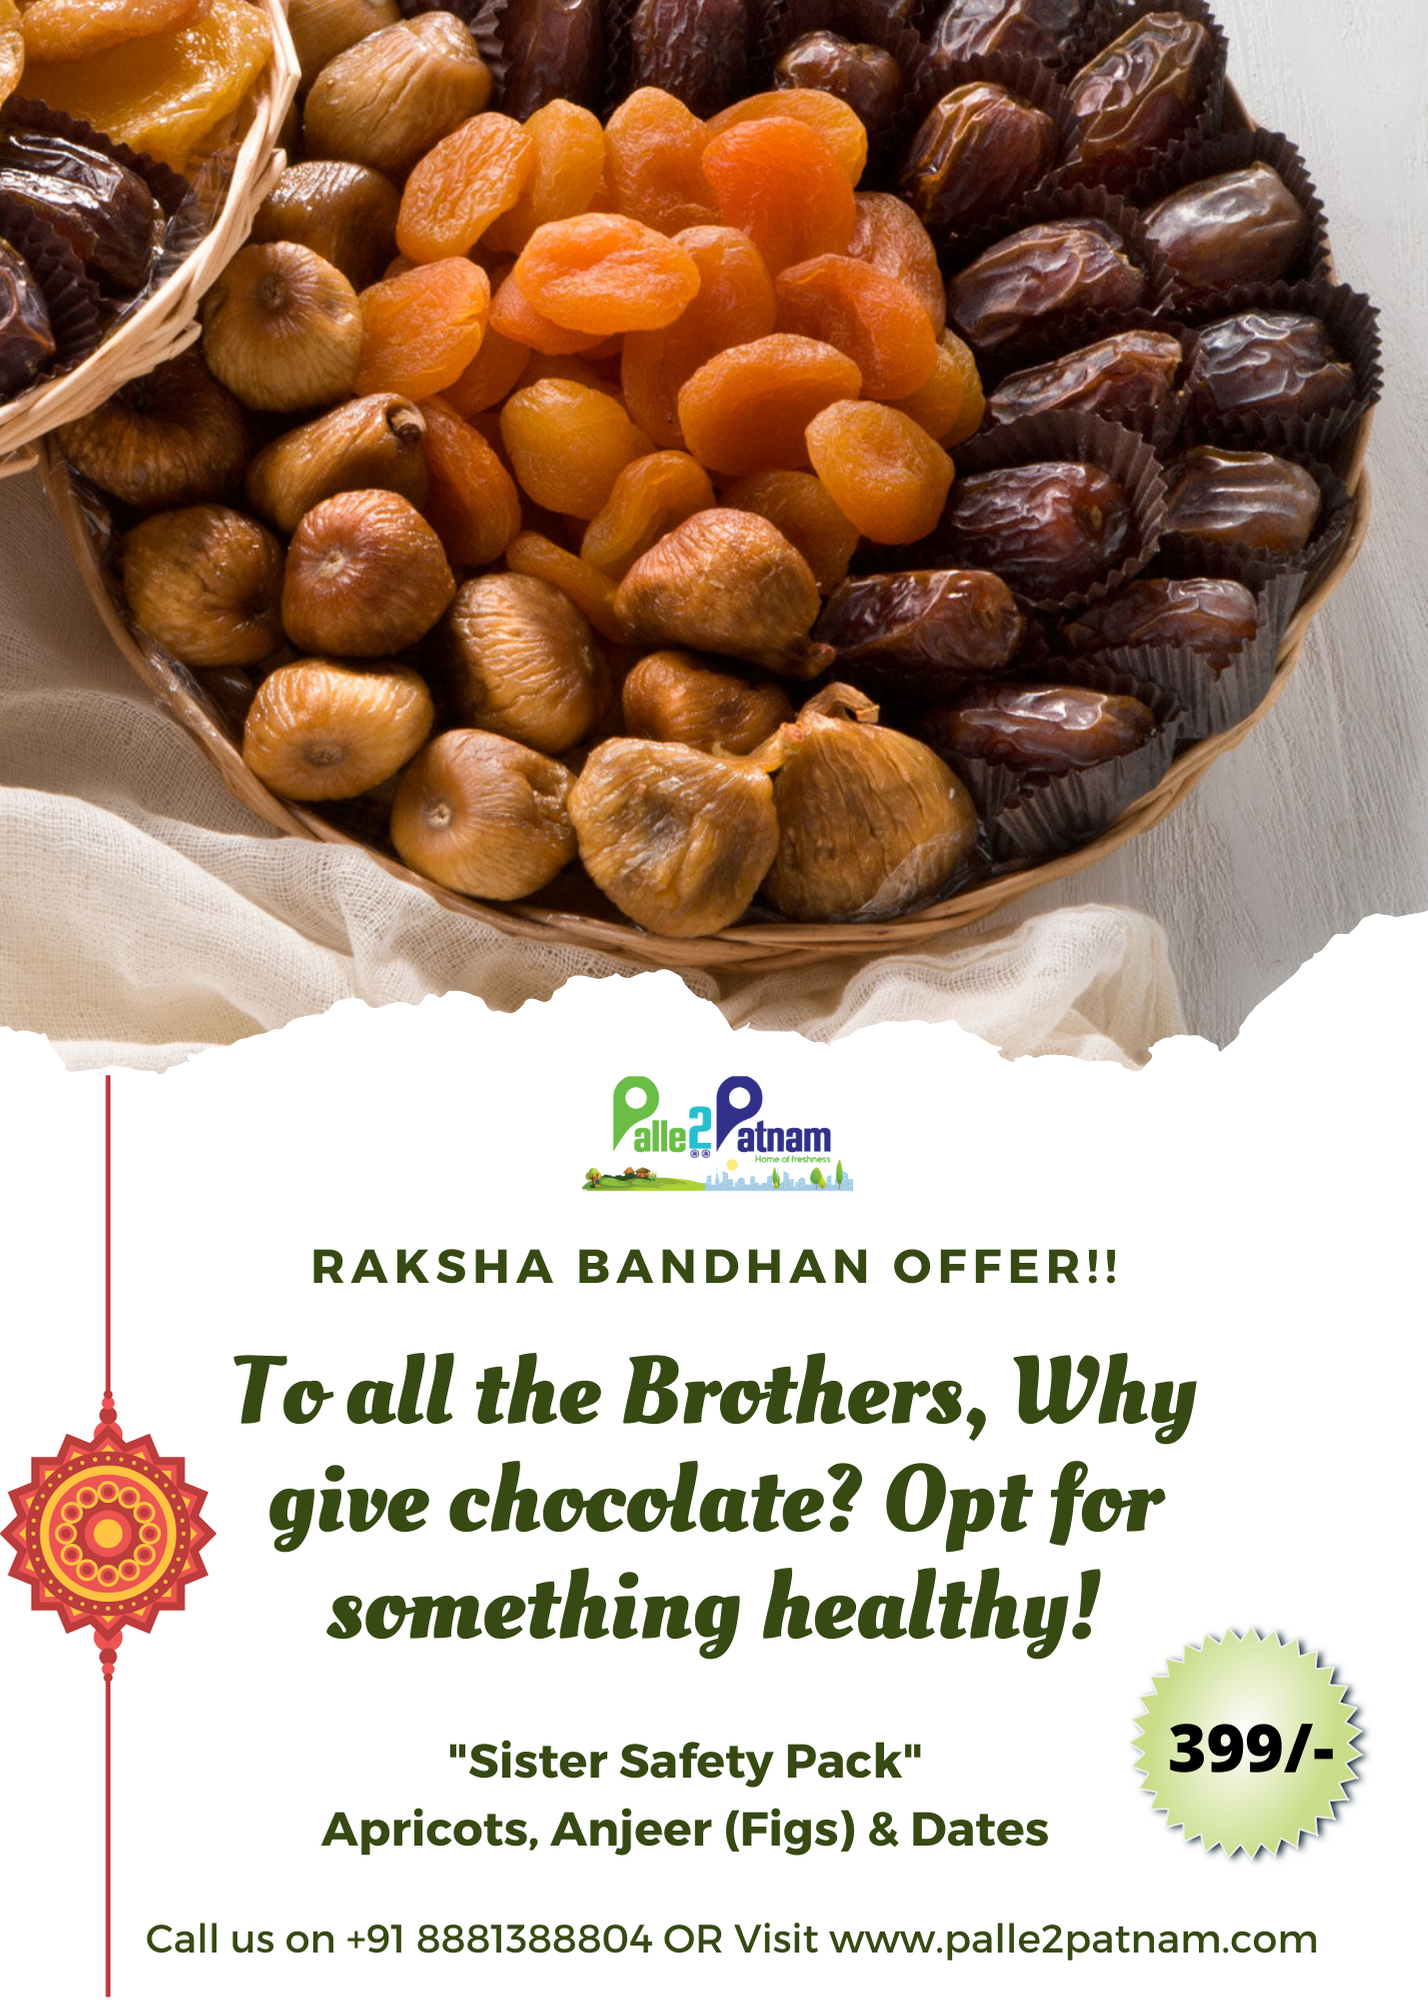 To all the Brothers, Why give chocolate? Opt for something healthy! During this pandemic give your sister healthy gift.